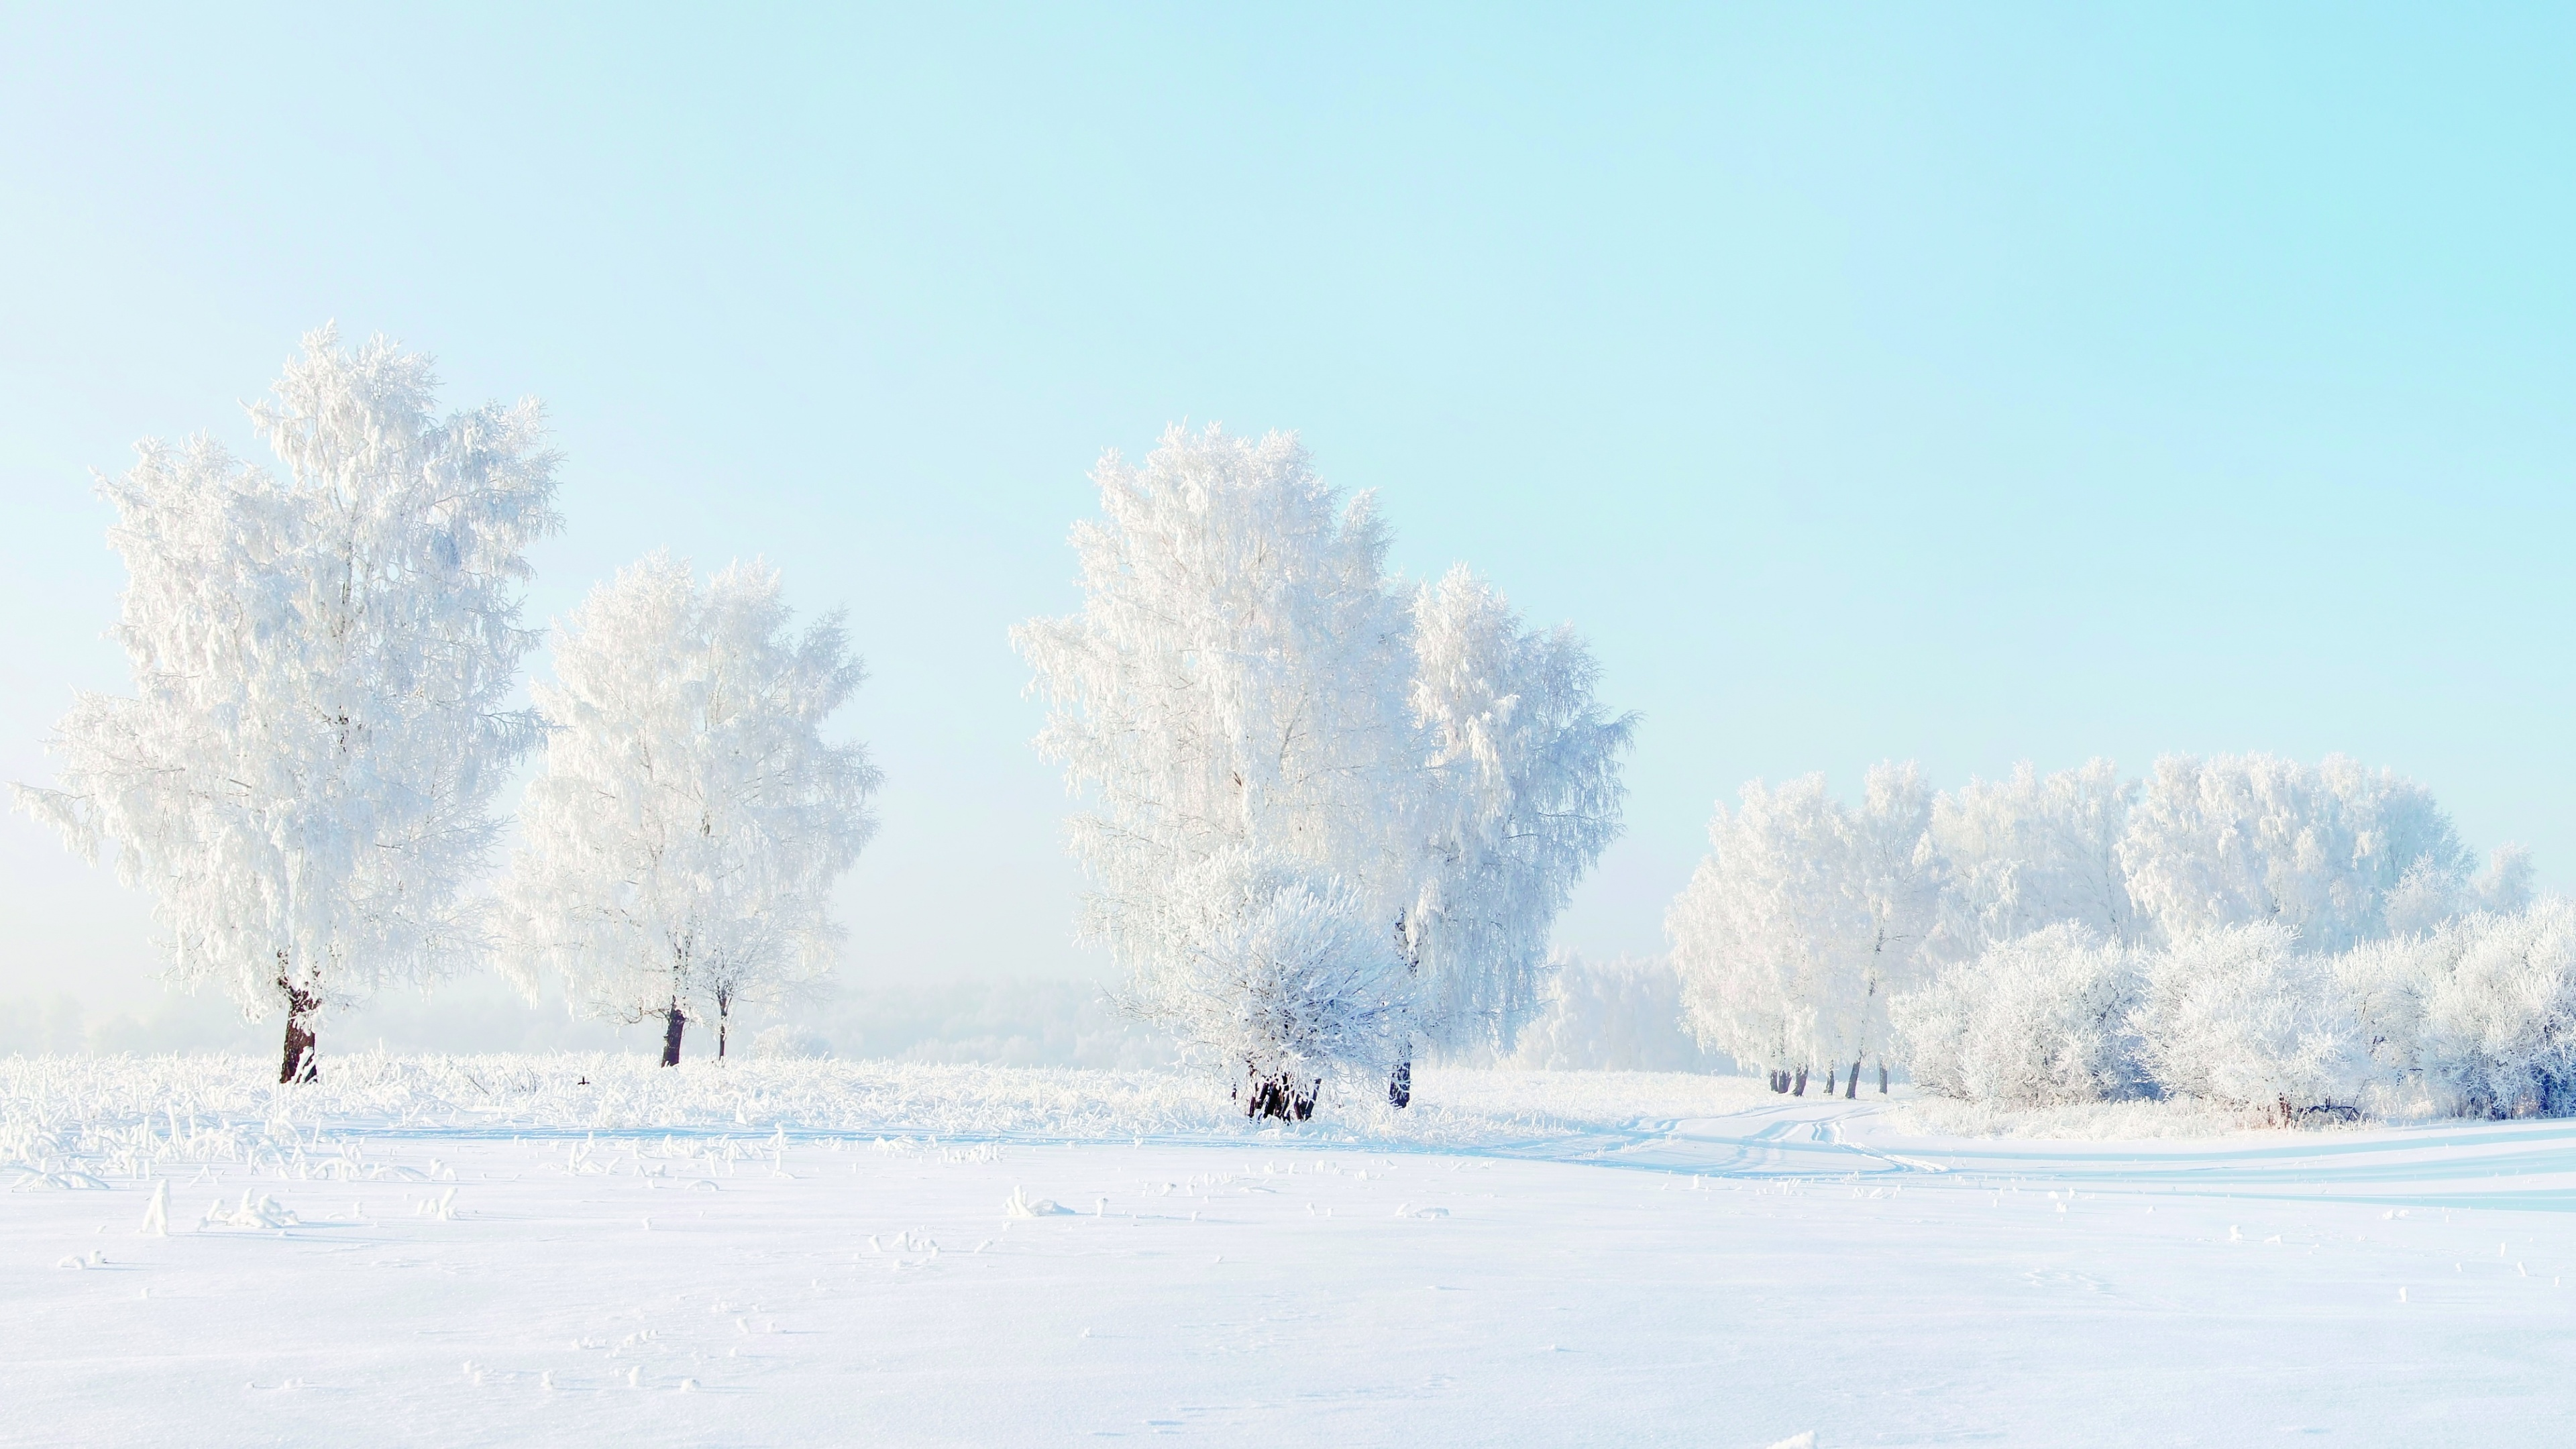 Winter Snow Trees Frost Wallpapers   3840x2160   1706835 3840x2160